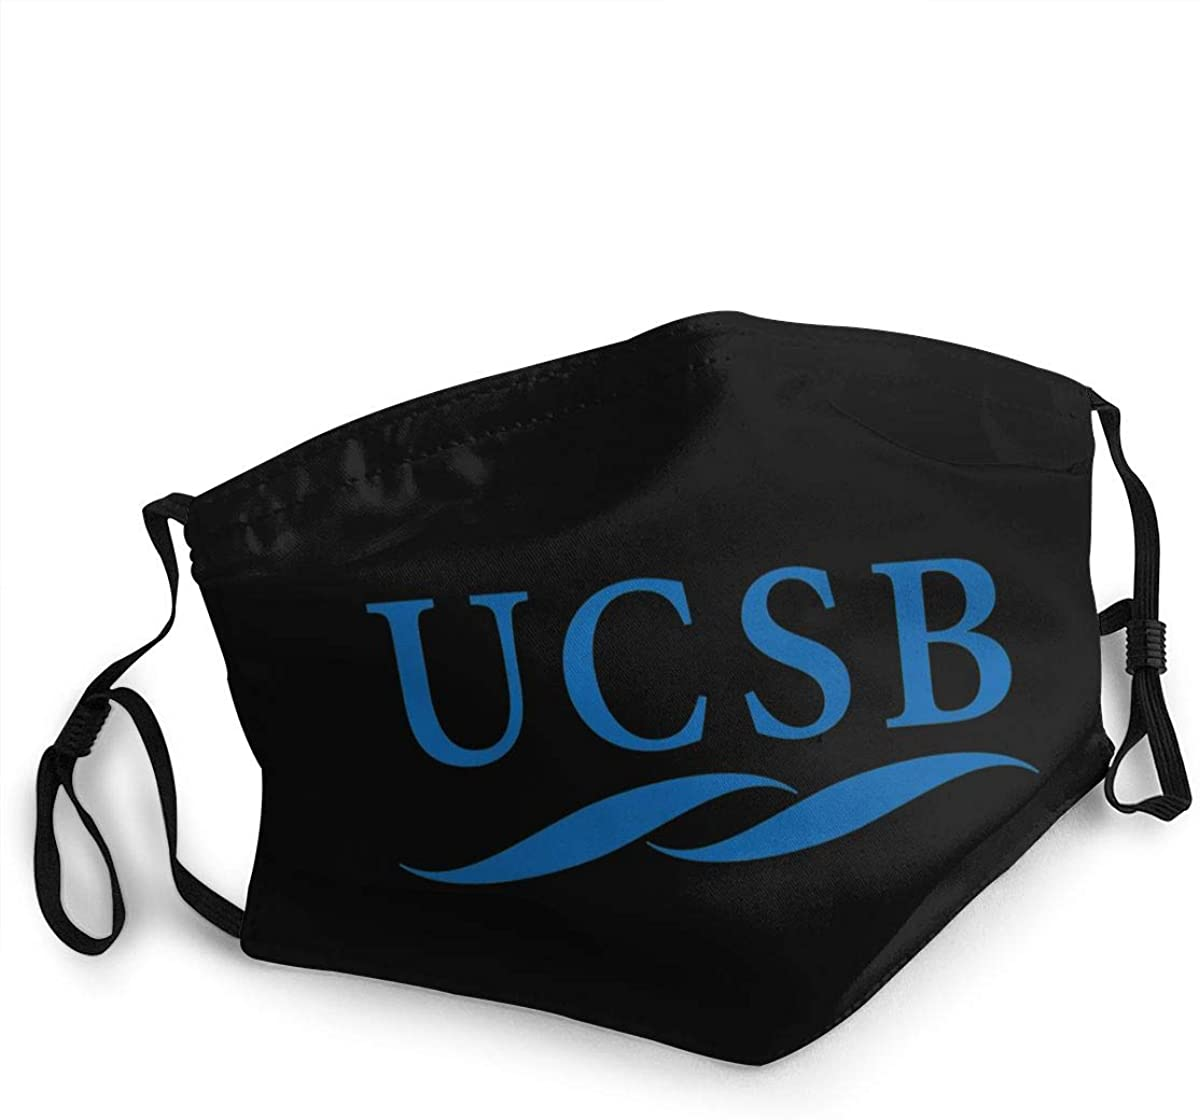 Ucsb Unisex Dust-Proof And Wind Proof Comfortable Face Scarf With Head Scarf And Neck Scarf